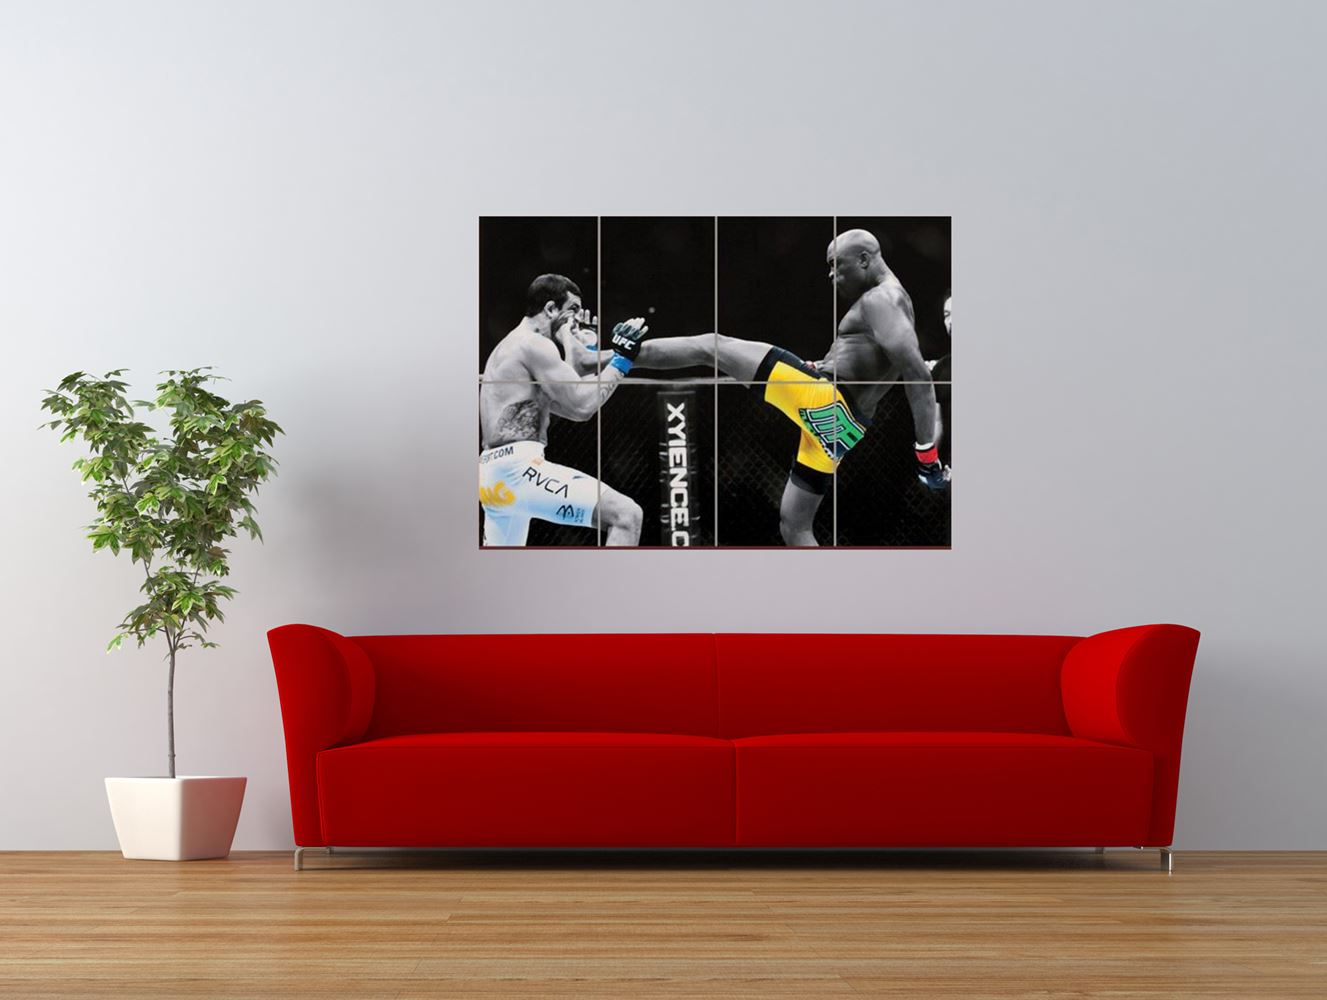 anderson silva ufc kick fighter cool giant art print panel poster nor0024 ebay. Black Bedroom Furniture Sets. Home Design Ideas